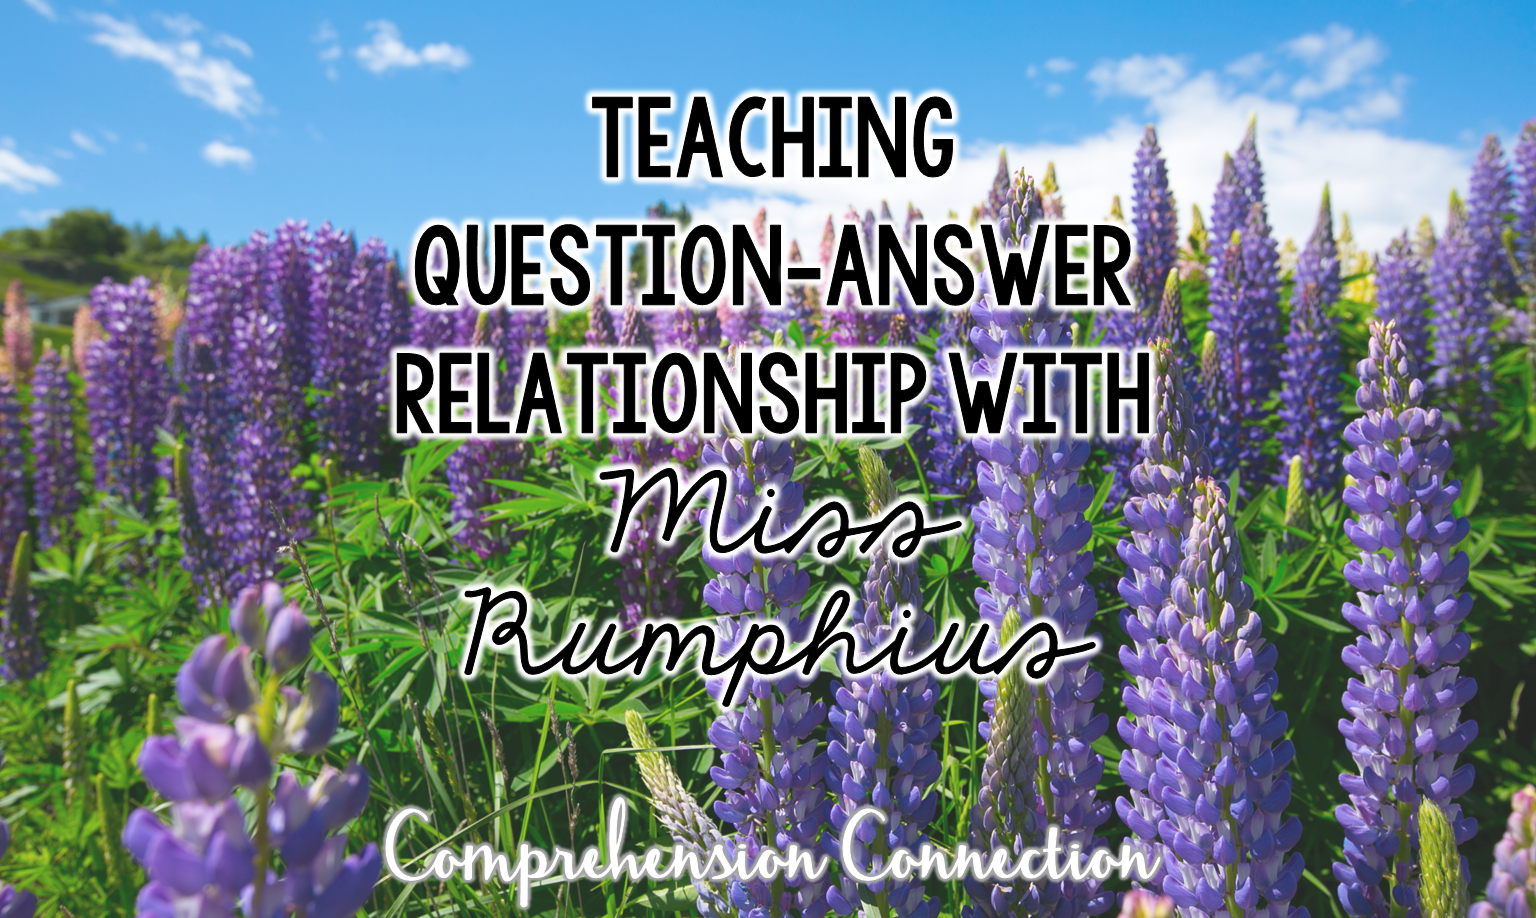 Teaching Question-Answer Relationships with Miss Rumphius